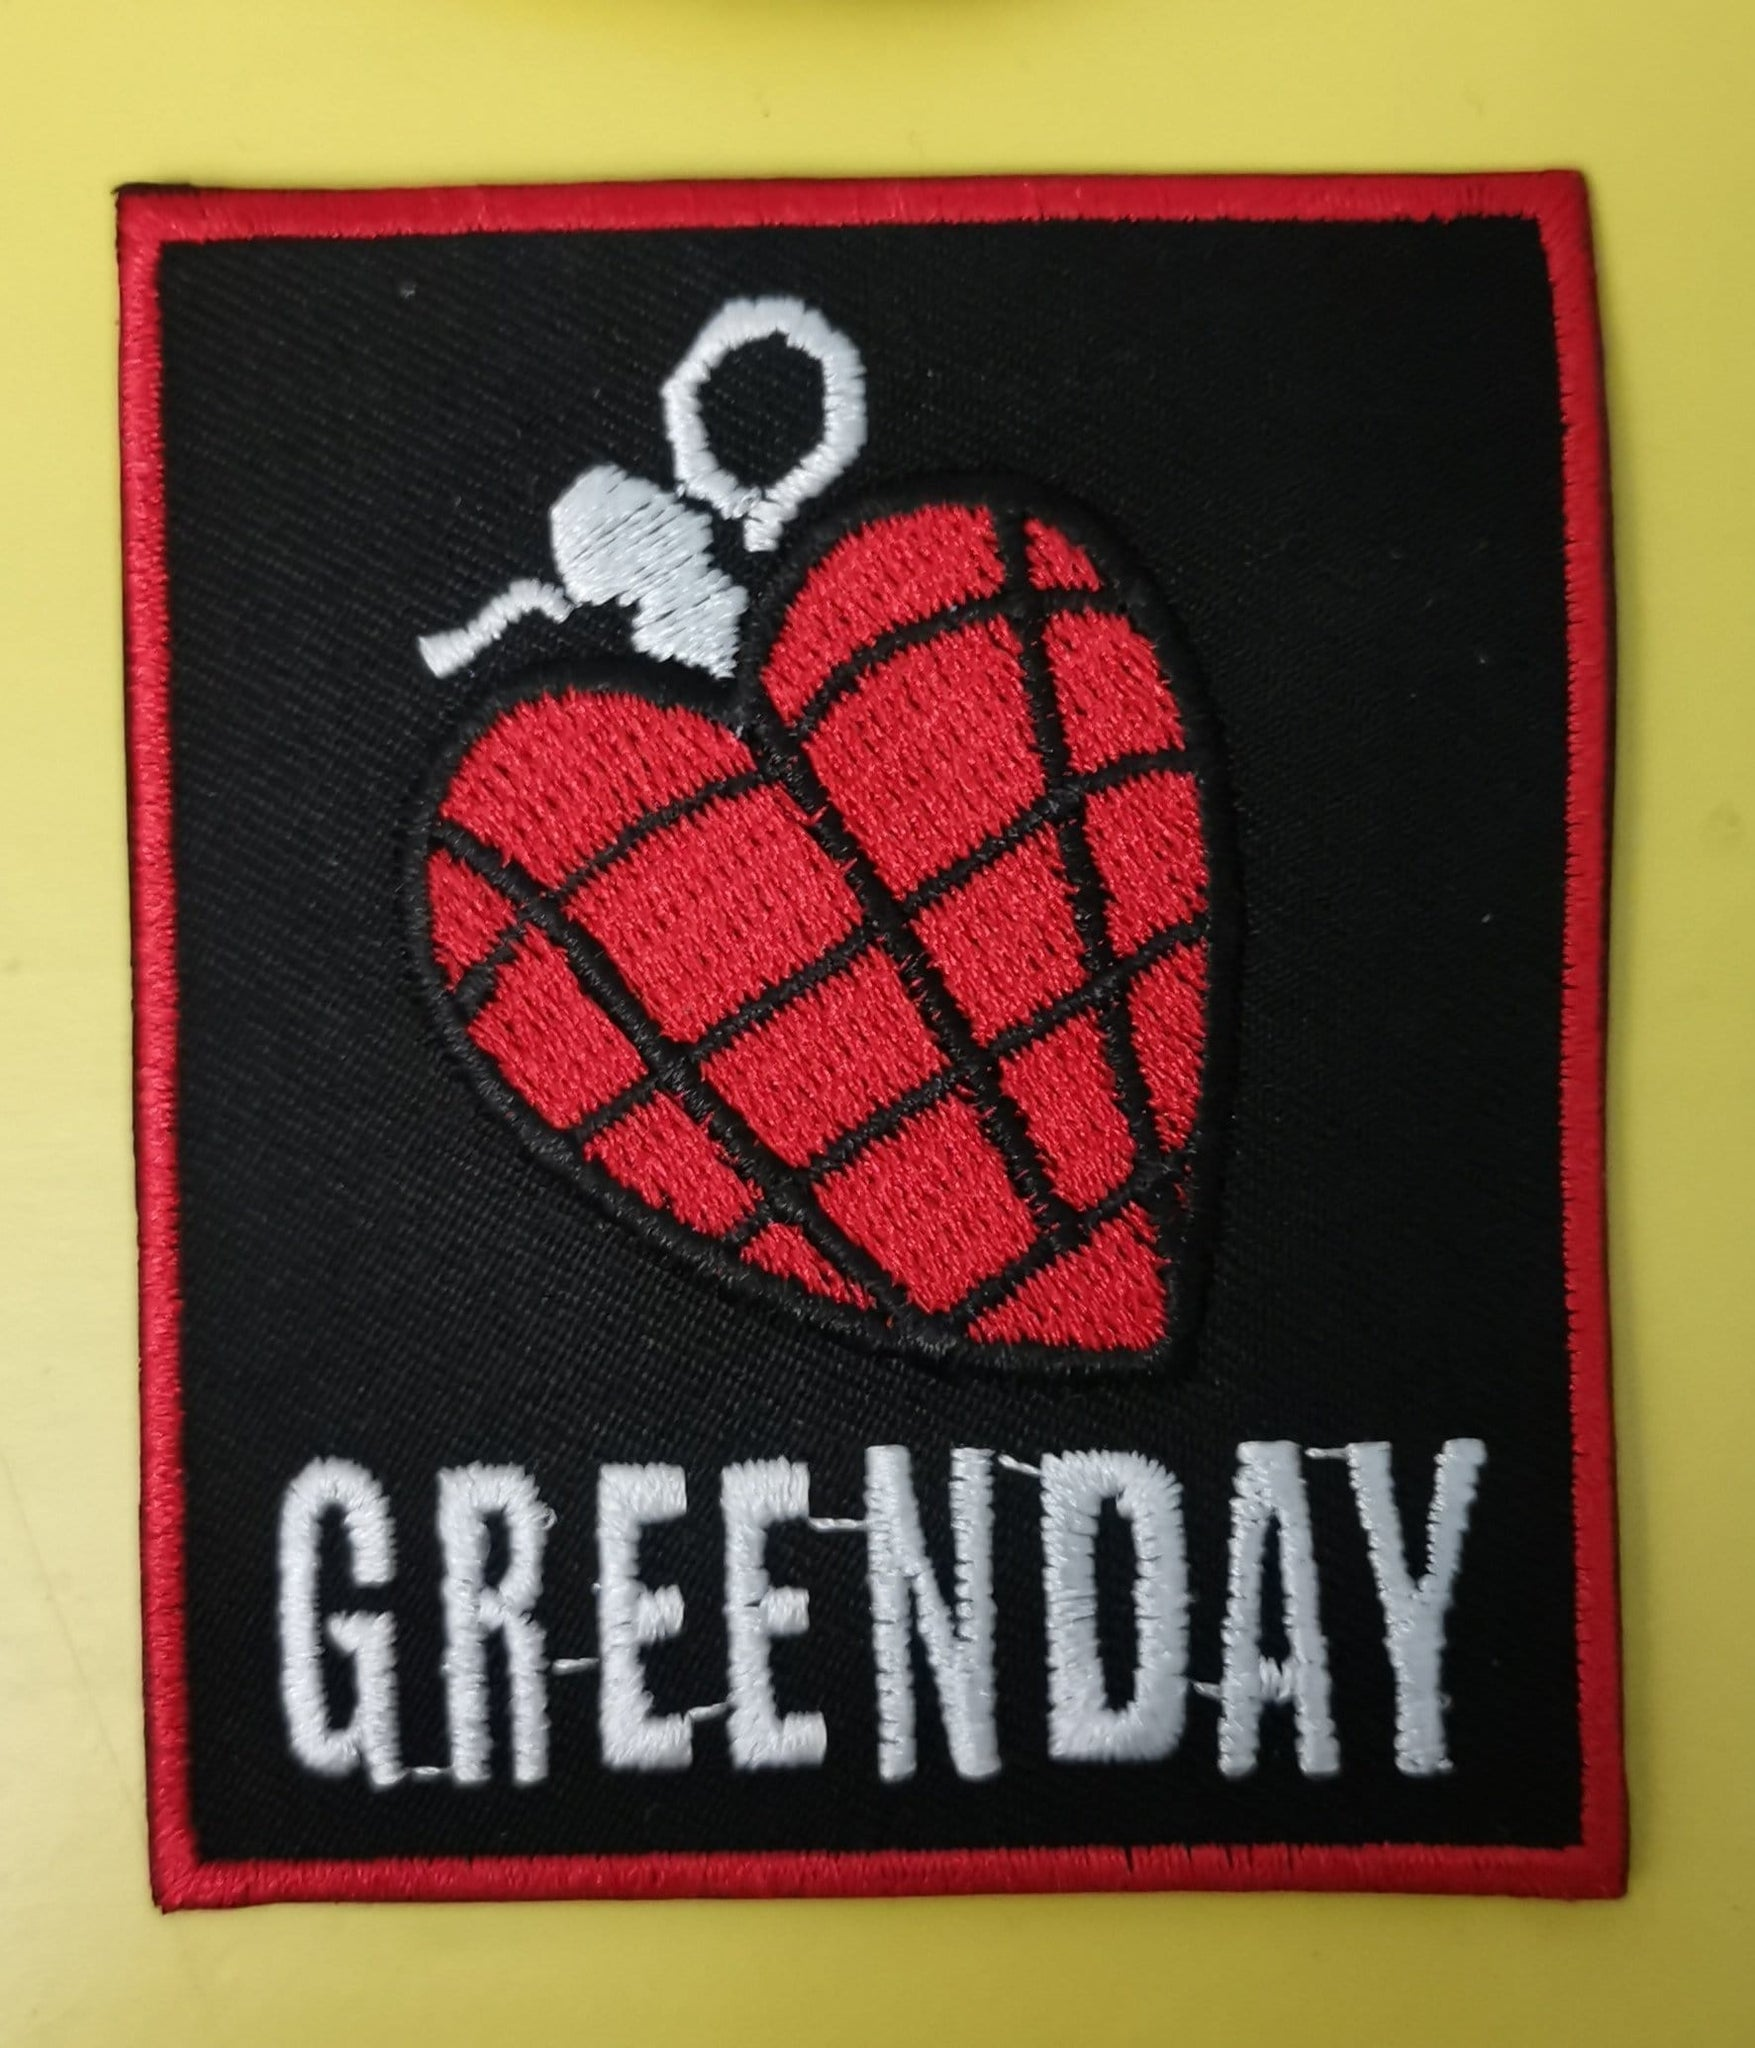 Greenday Embroidered Iron on Patch